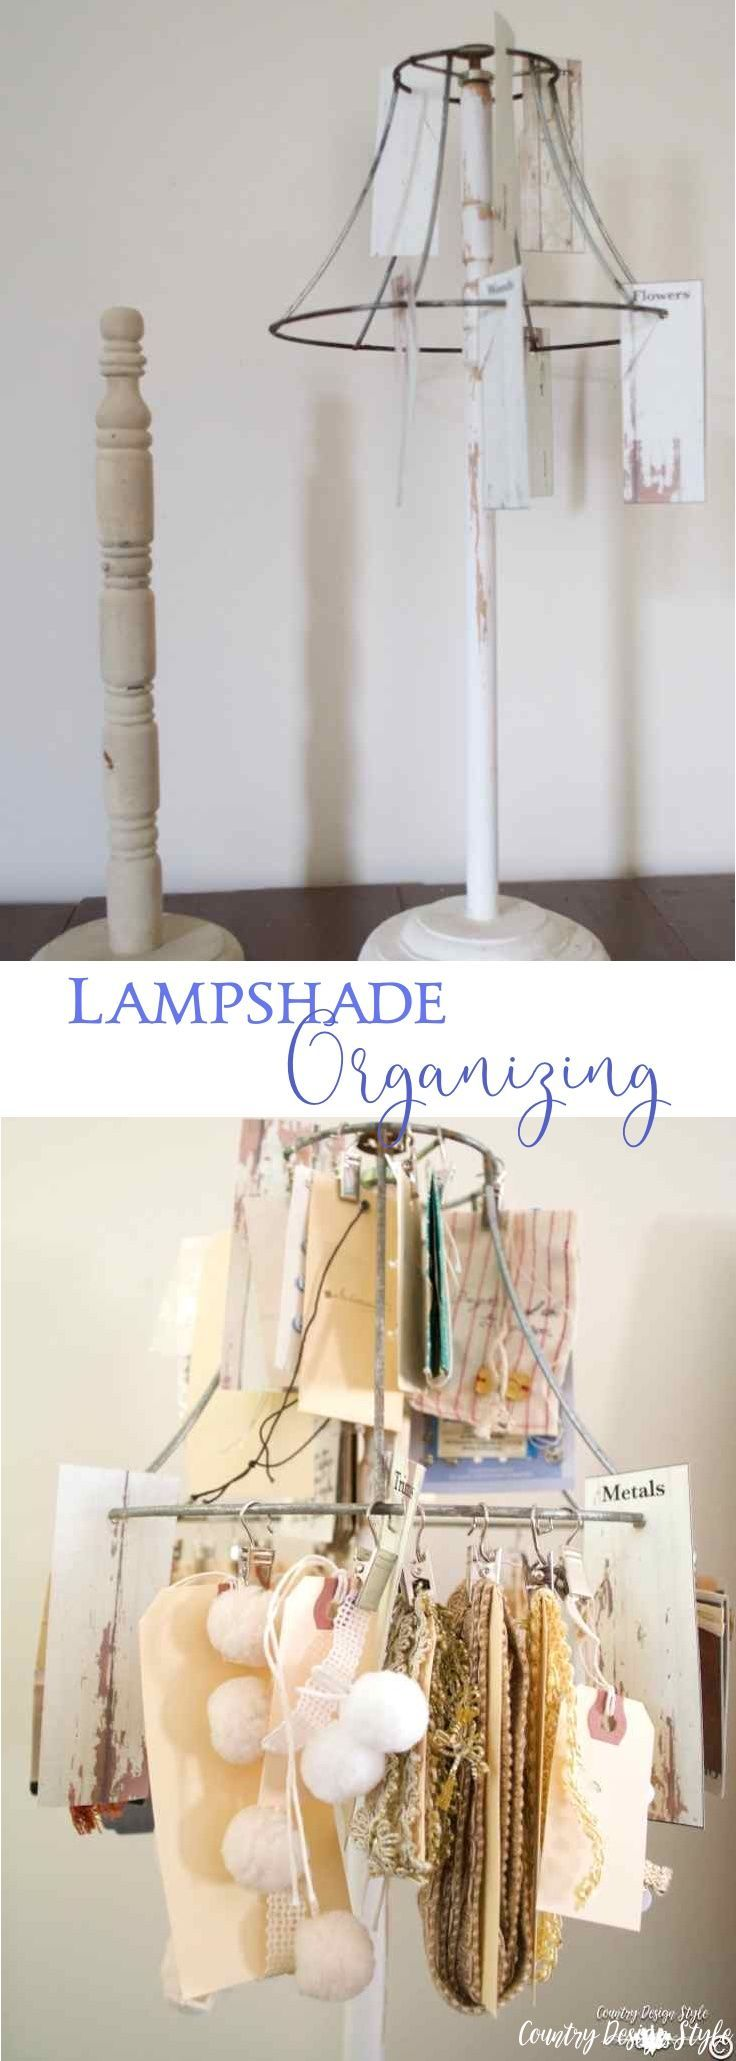 How to use an old lampshade to organize small crafting and scrapbooking supplies.  | Country Design Style | countrydesignstyle.com #organizingcraftsupplies